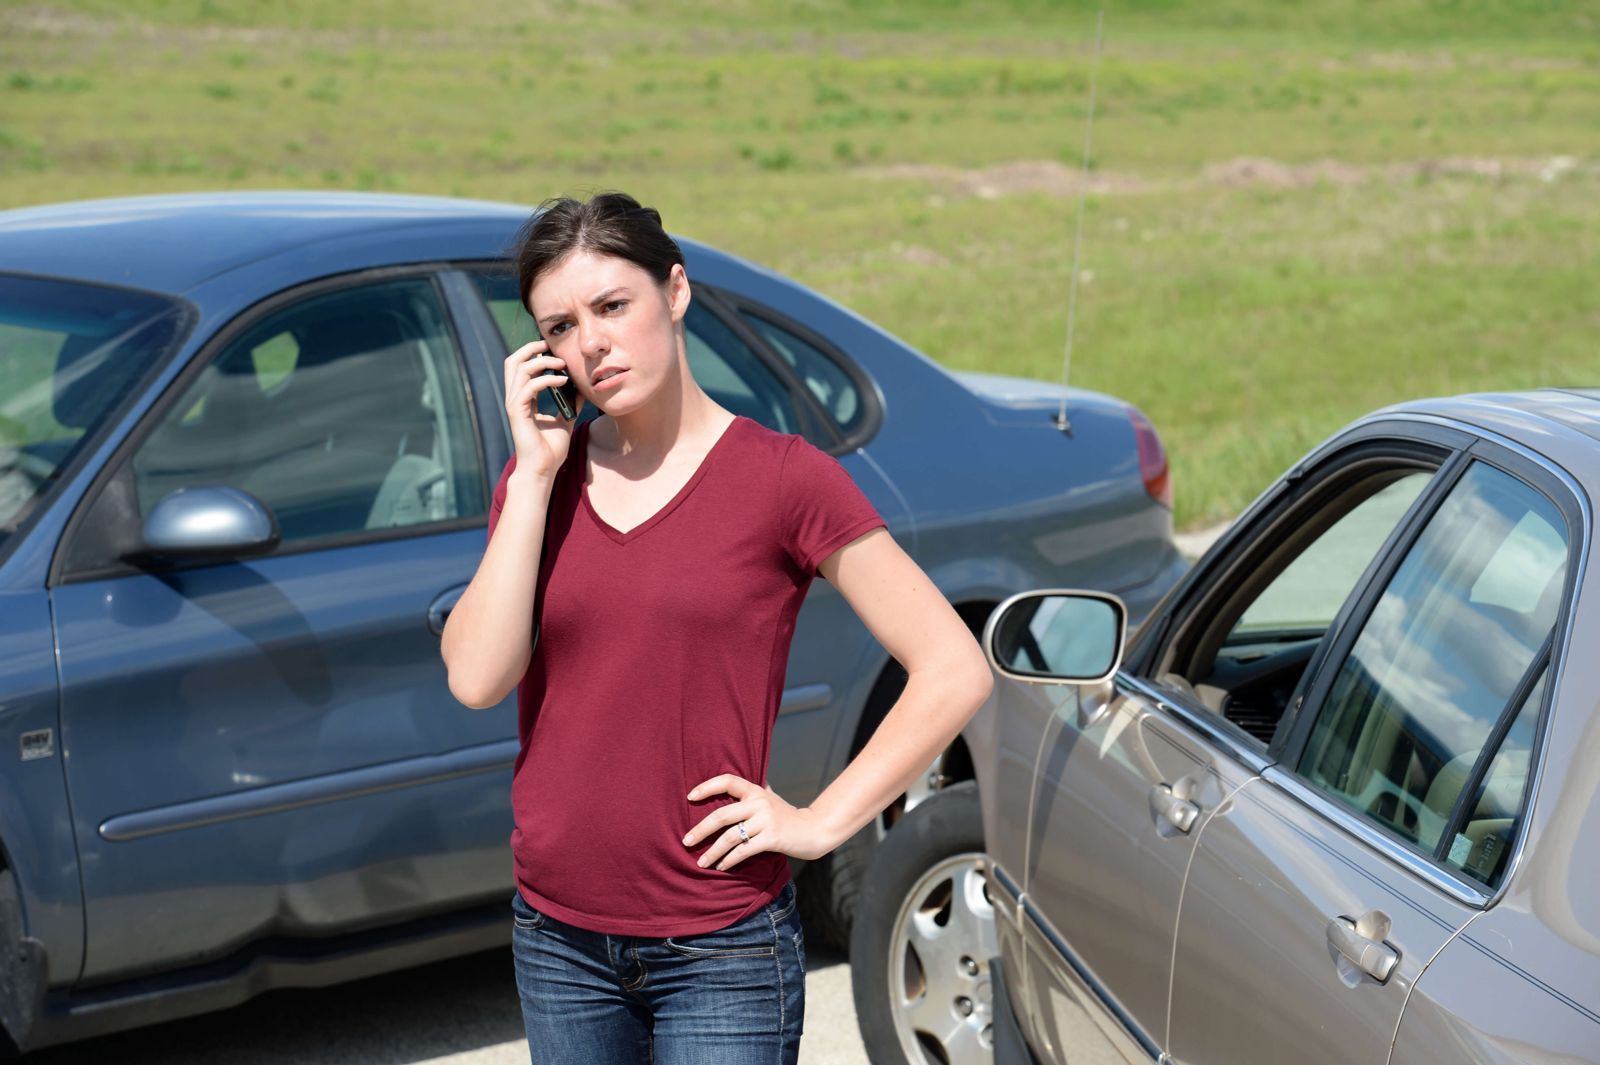 Car Accident Car Damage Diminished Value